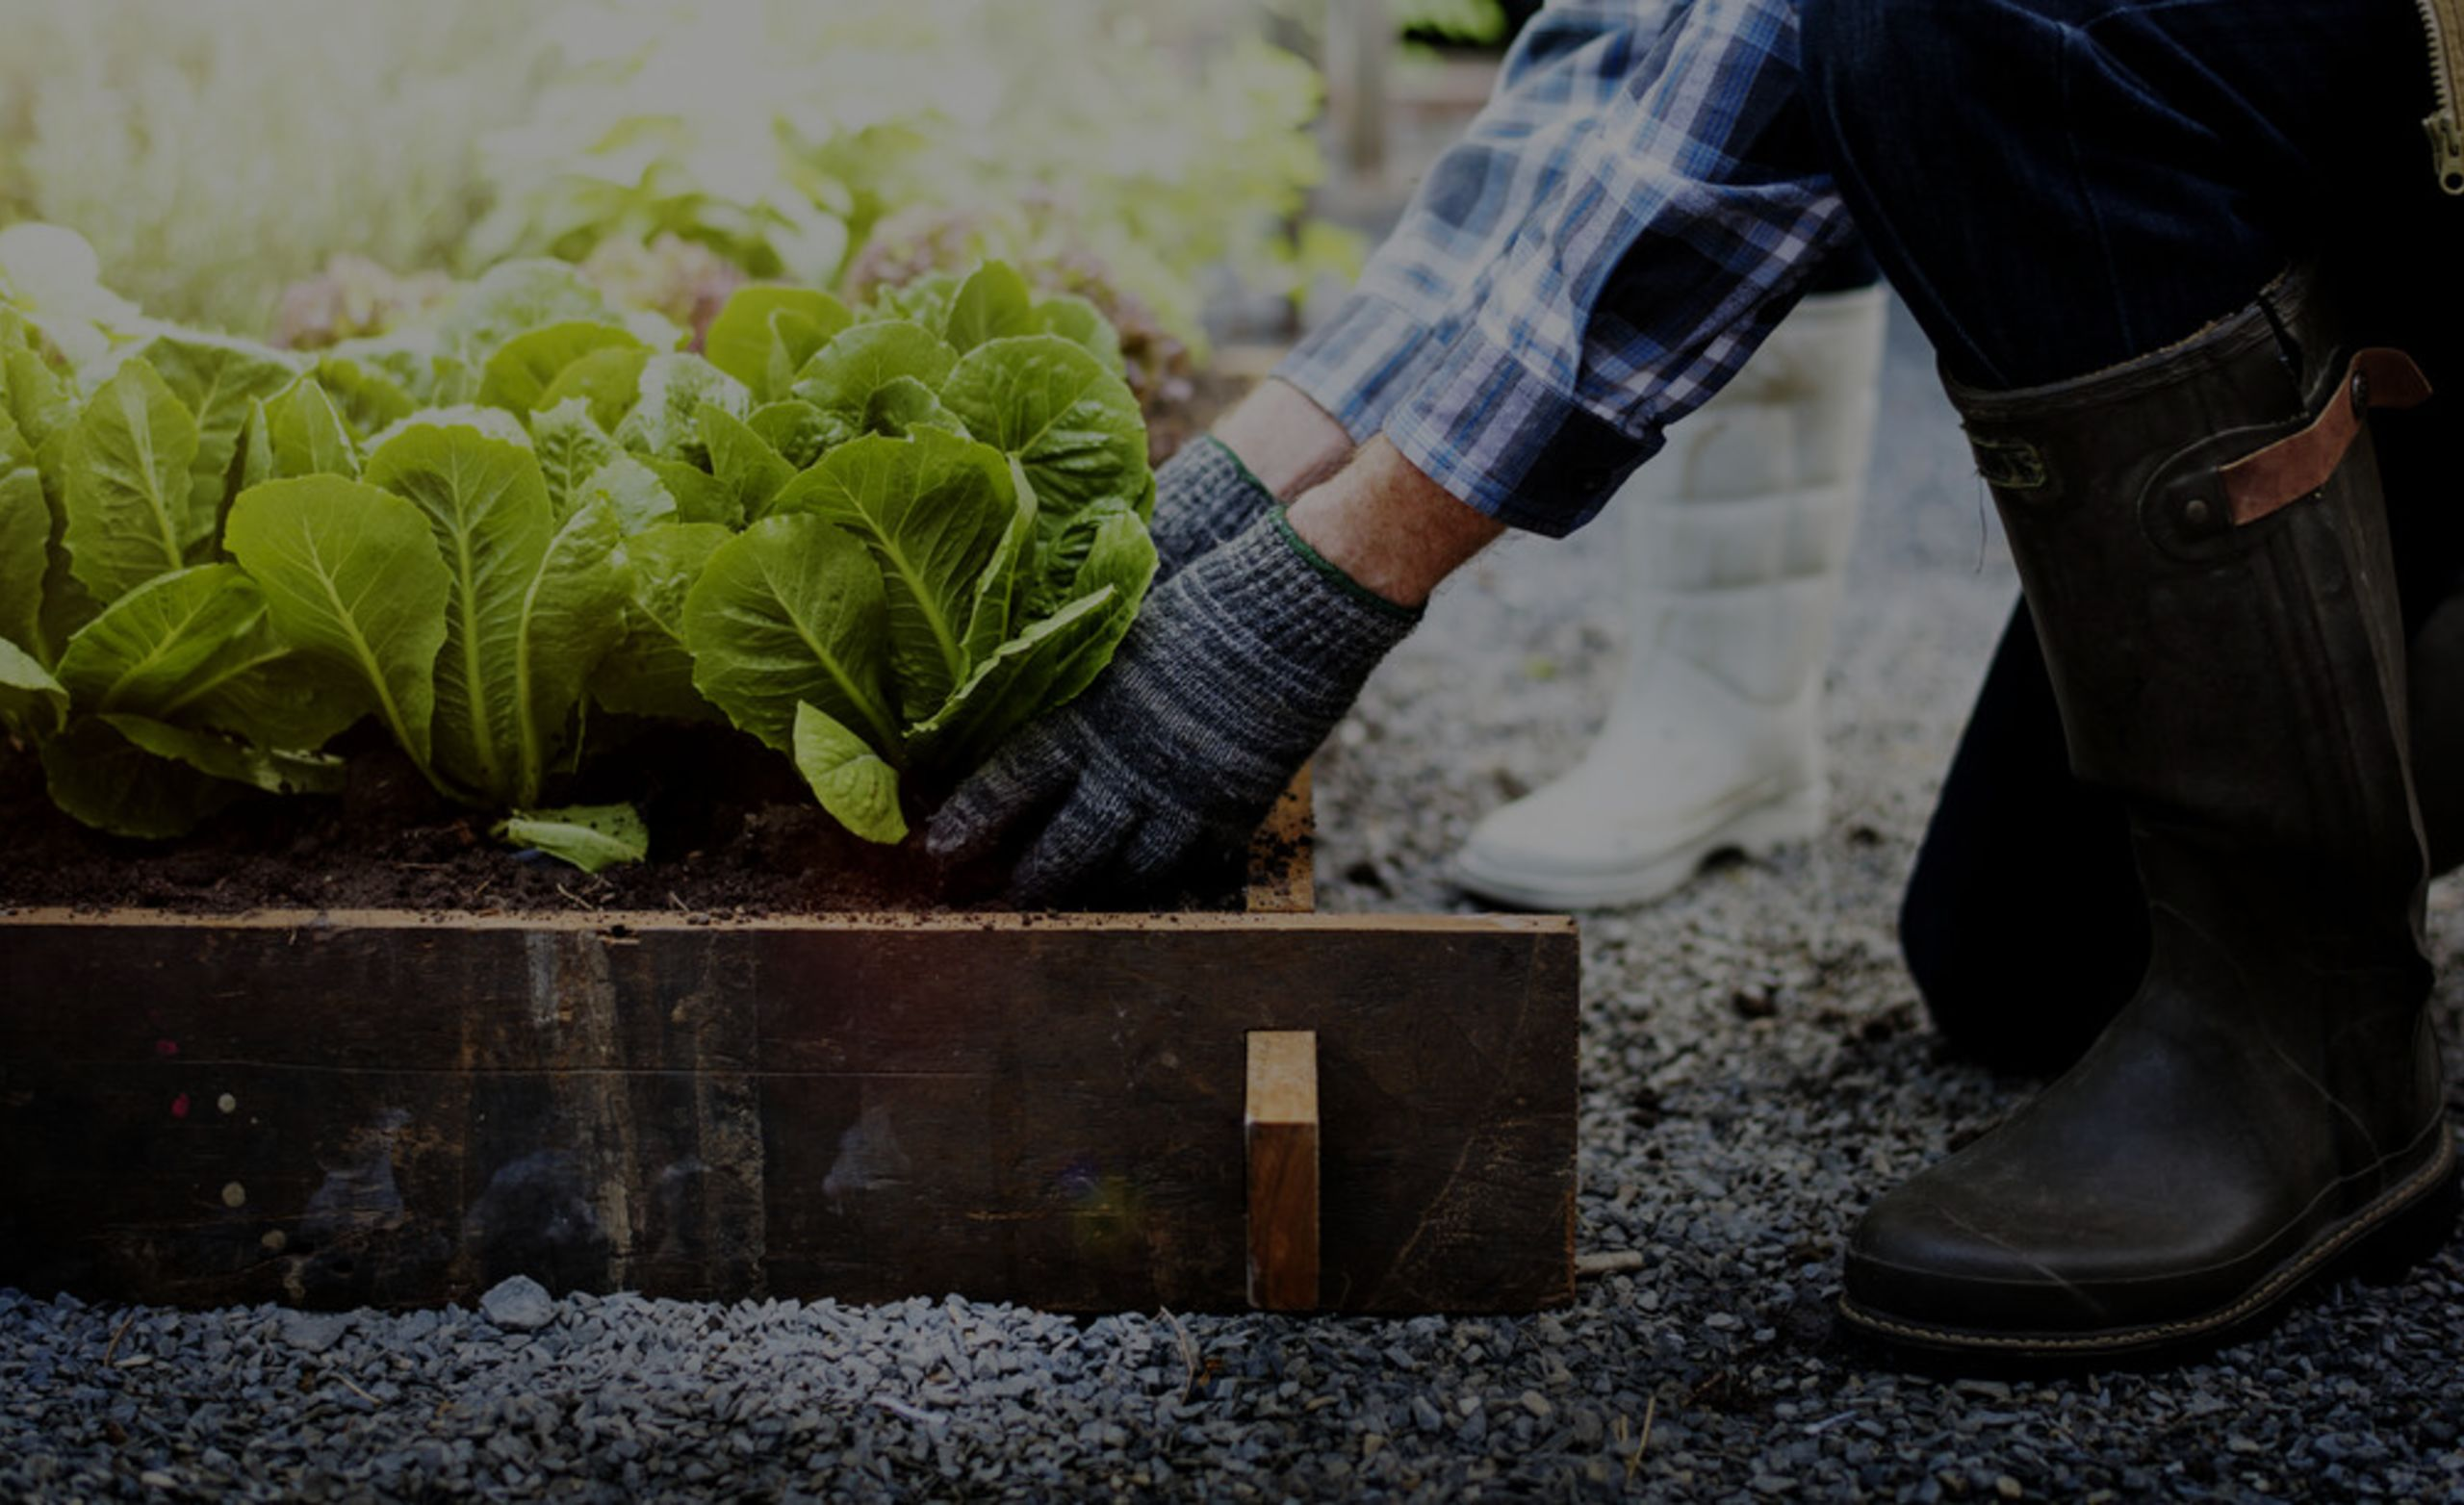 Gardening Tips to Help Your Yard + Your Stomach